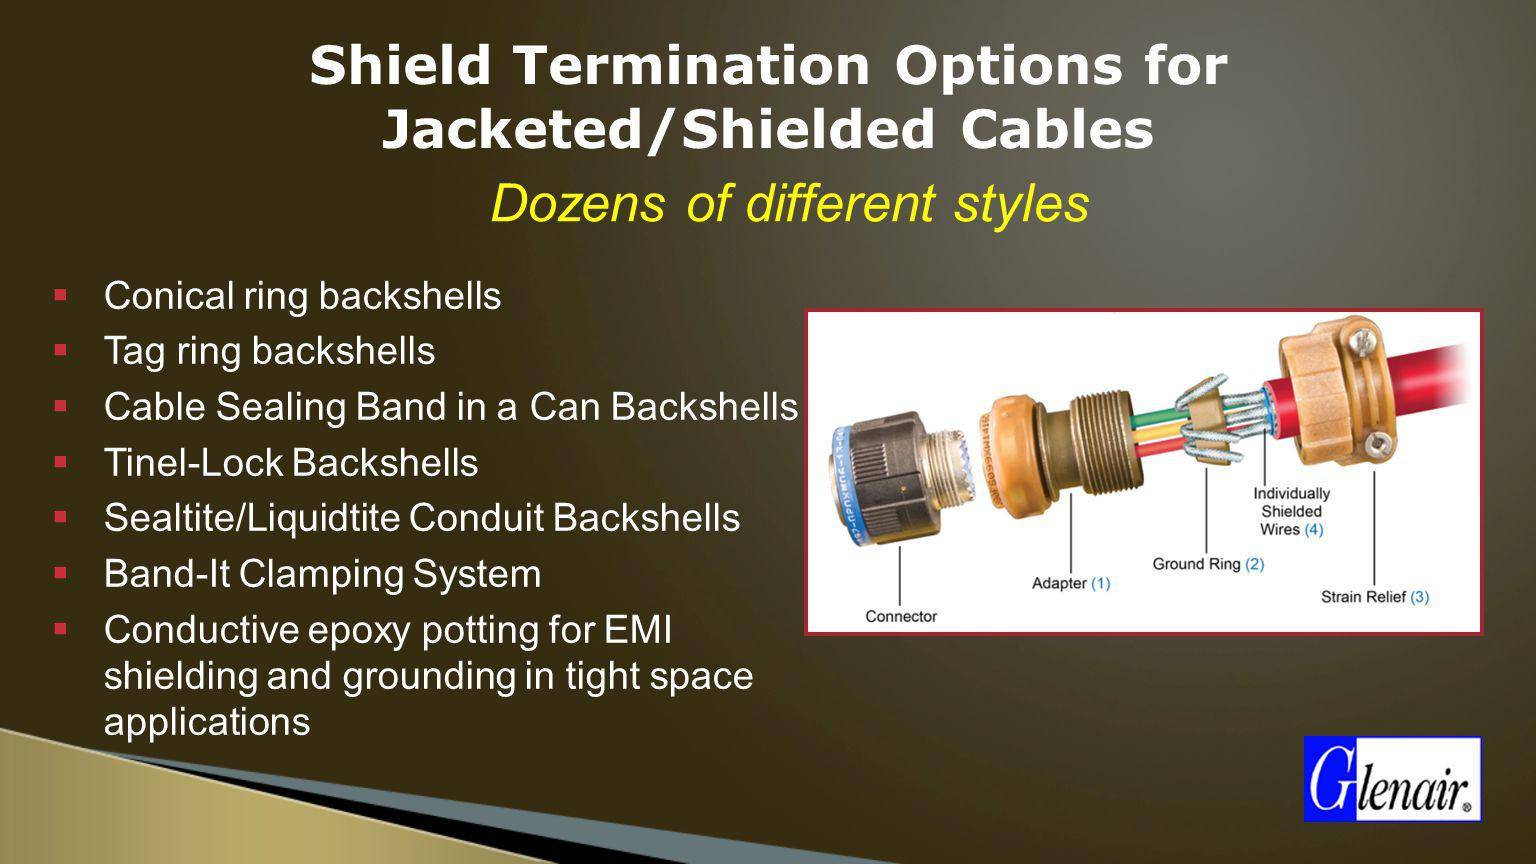 Shield Termination Options for Jacketed/Shielded Cables